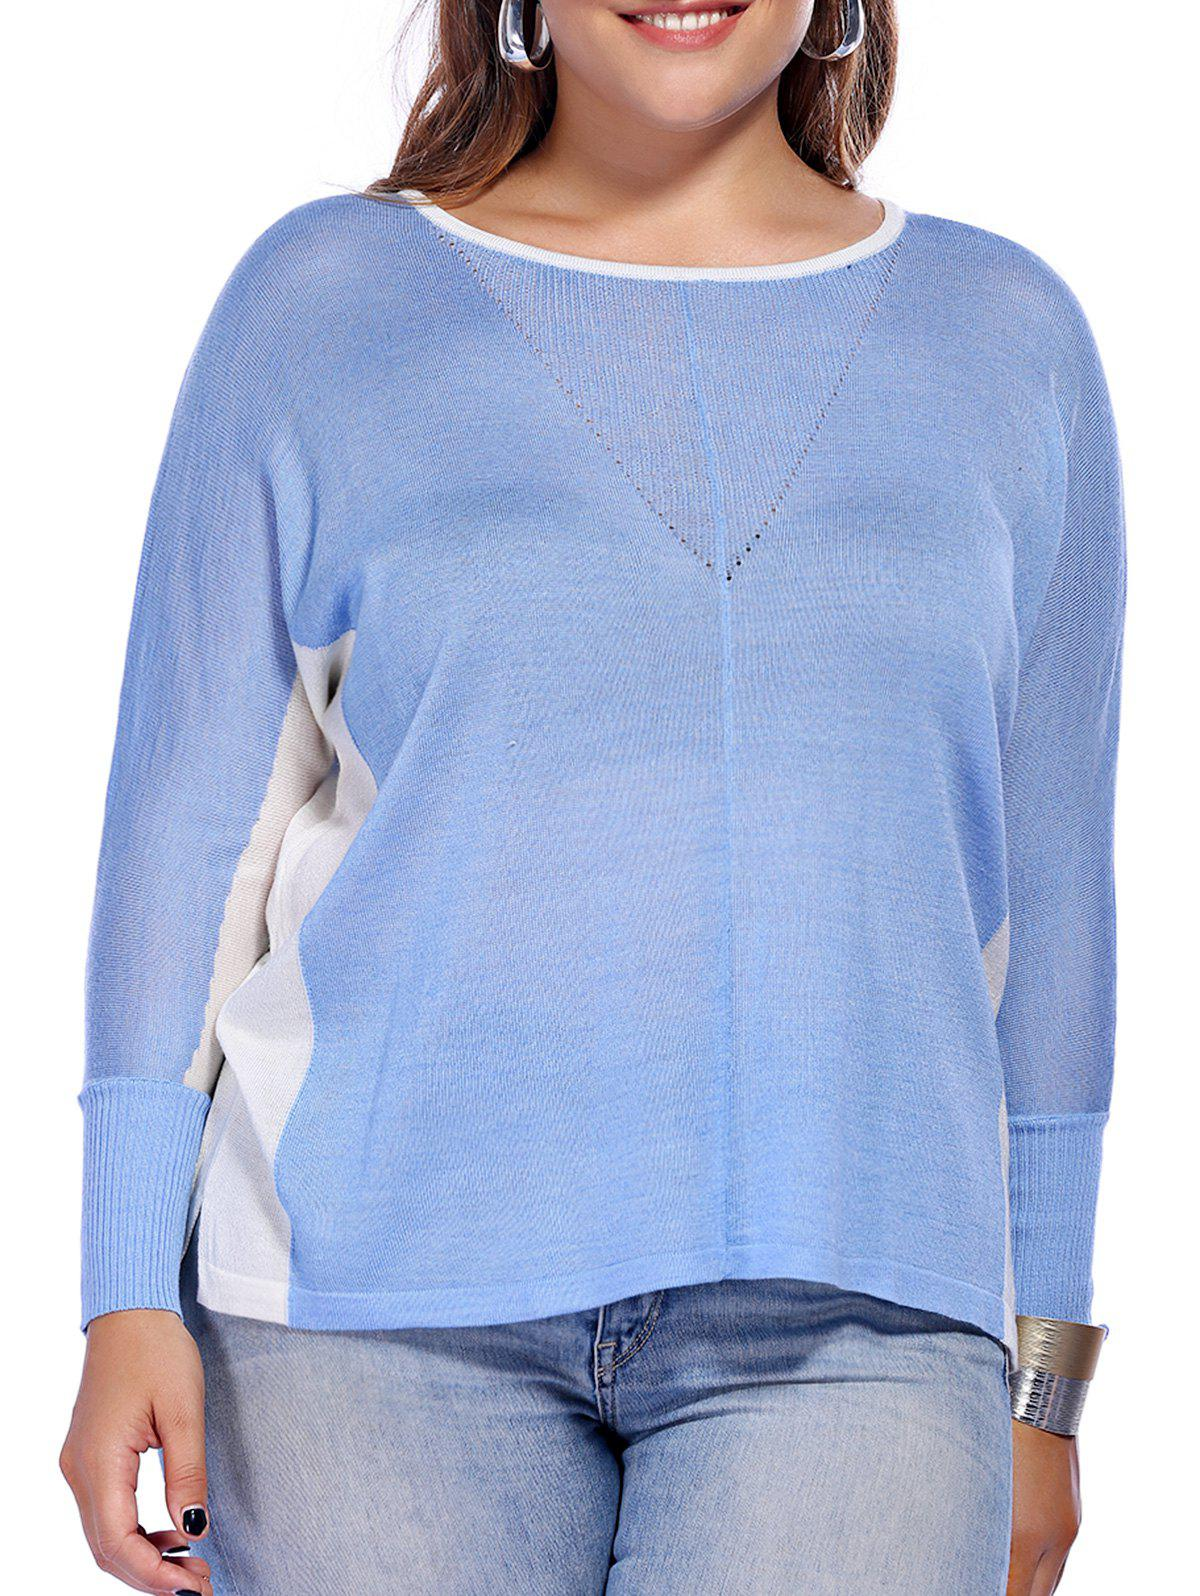 Chic Plus Size High-Low Hem Color Block Knitted Women's Blouse - BLUE ONE SIZE(FIT SIZE L TO 3XL)